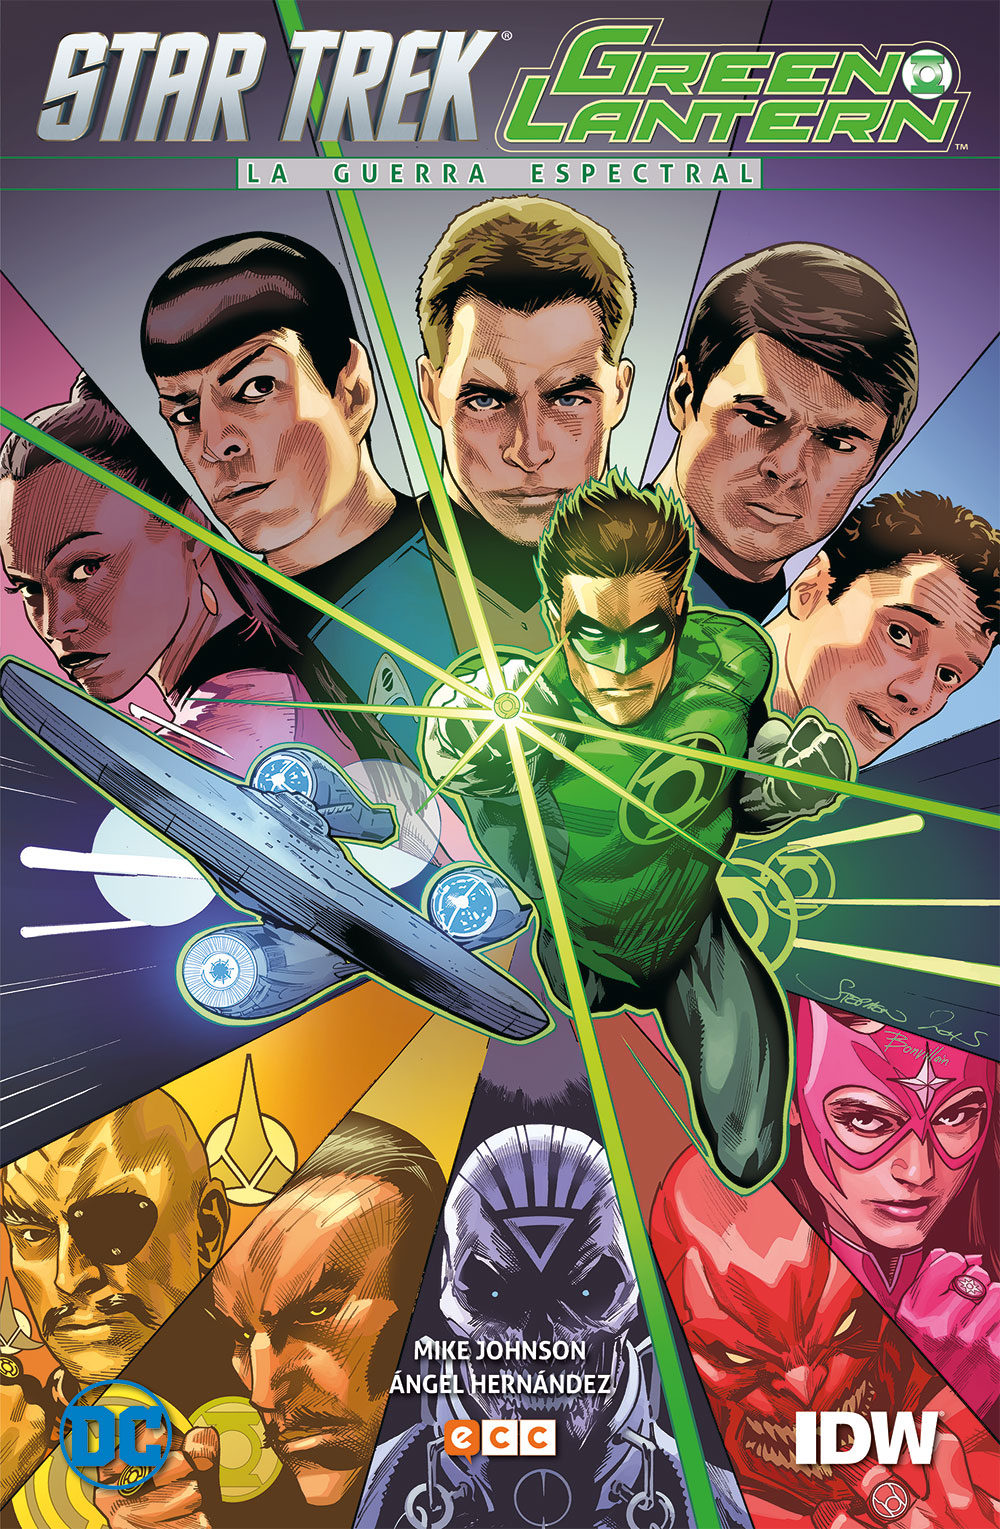 descargar GREEN LANTERN / STAR TREK: LA GUERRA ESPECTRAL pdf, ebook